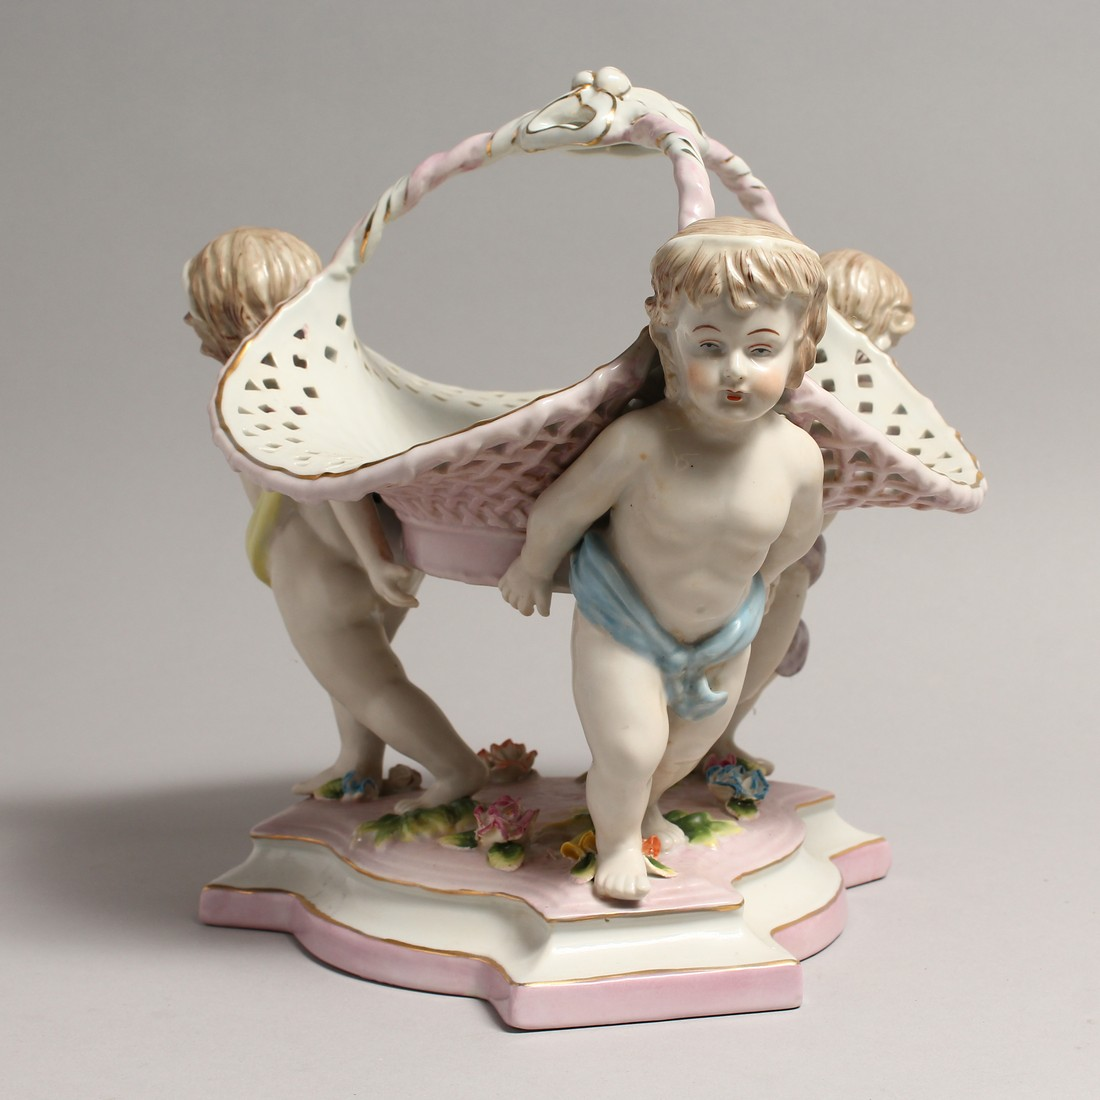 A MEISSEN STYLE PORCELAIN BASKET supported by three cupids. 10ins high